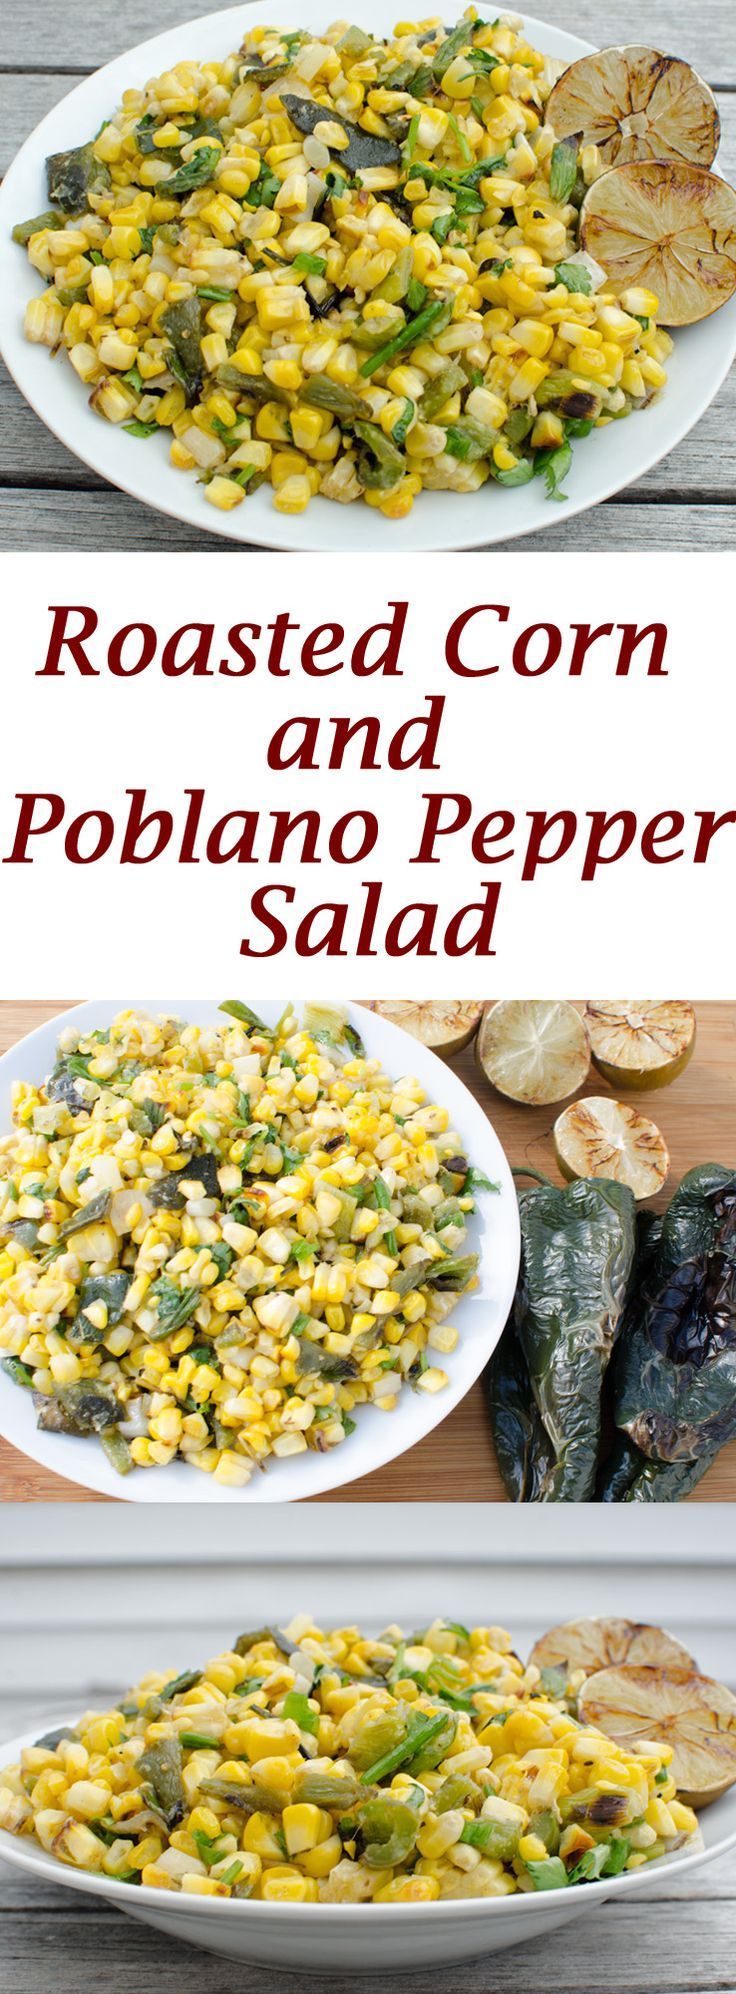 Roasted Corn Salad with Poblano Peppers and Grilled Limes: This roasted corn salad is less than 160 calories and, 5 Weight Watcher Points per serving.  It makes a great side dish or it can be used as a condiment on tacos or salads.  One of my favorite way